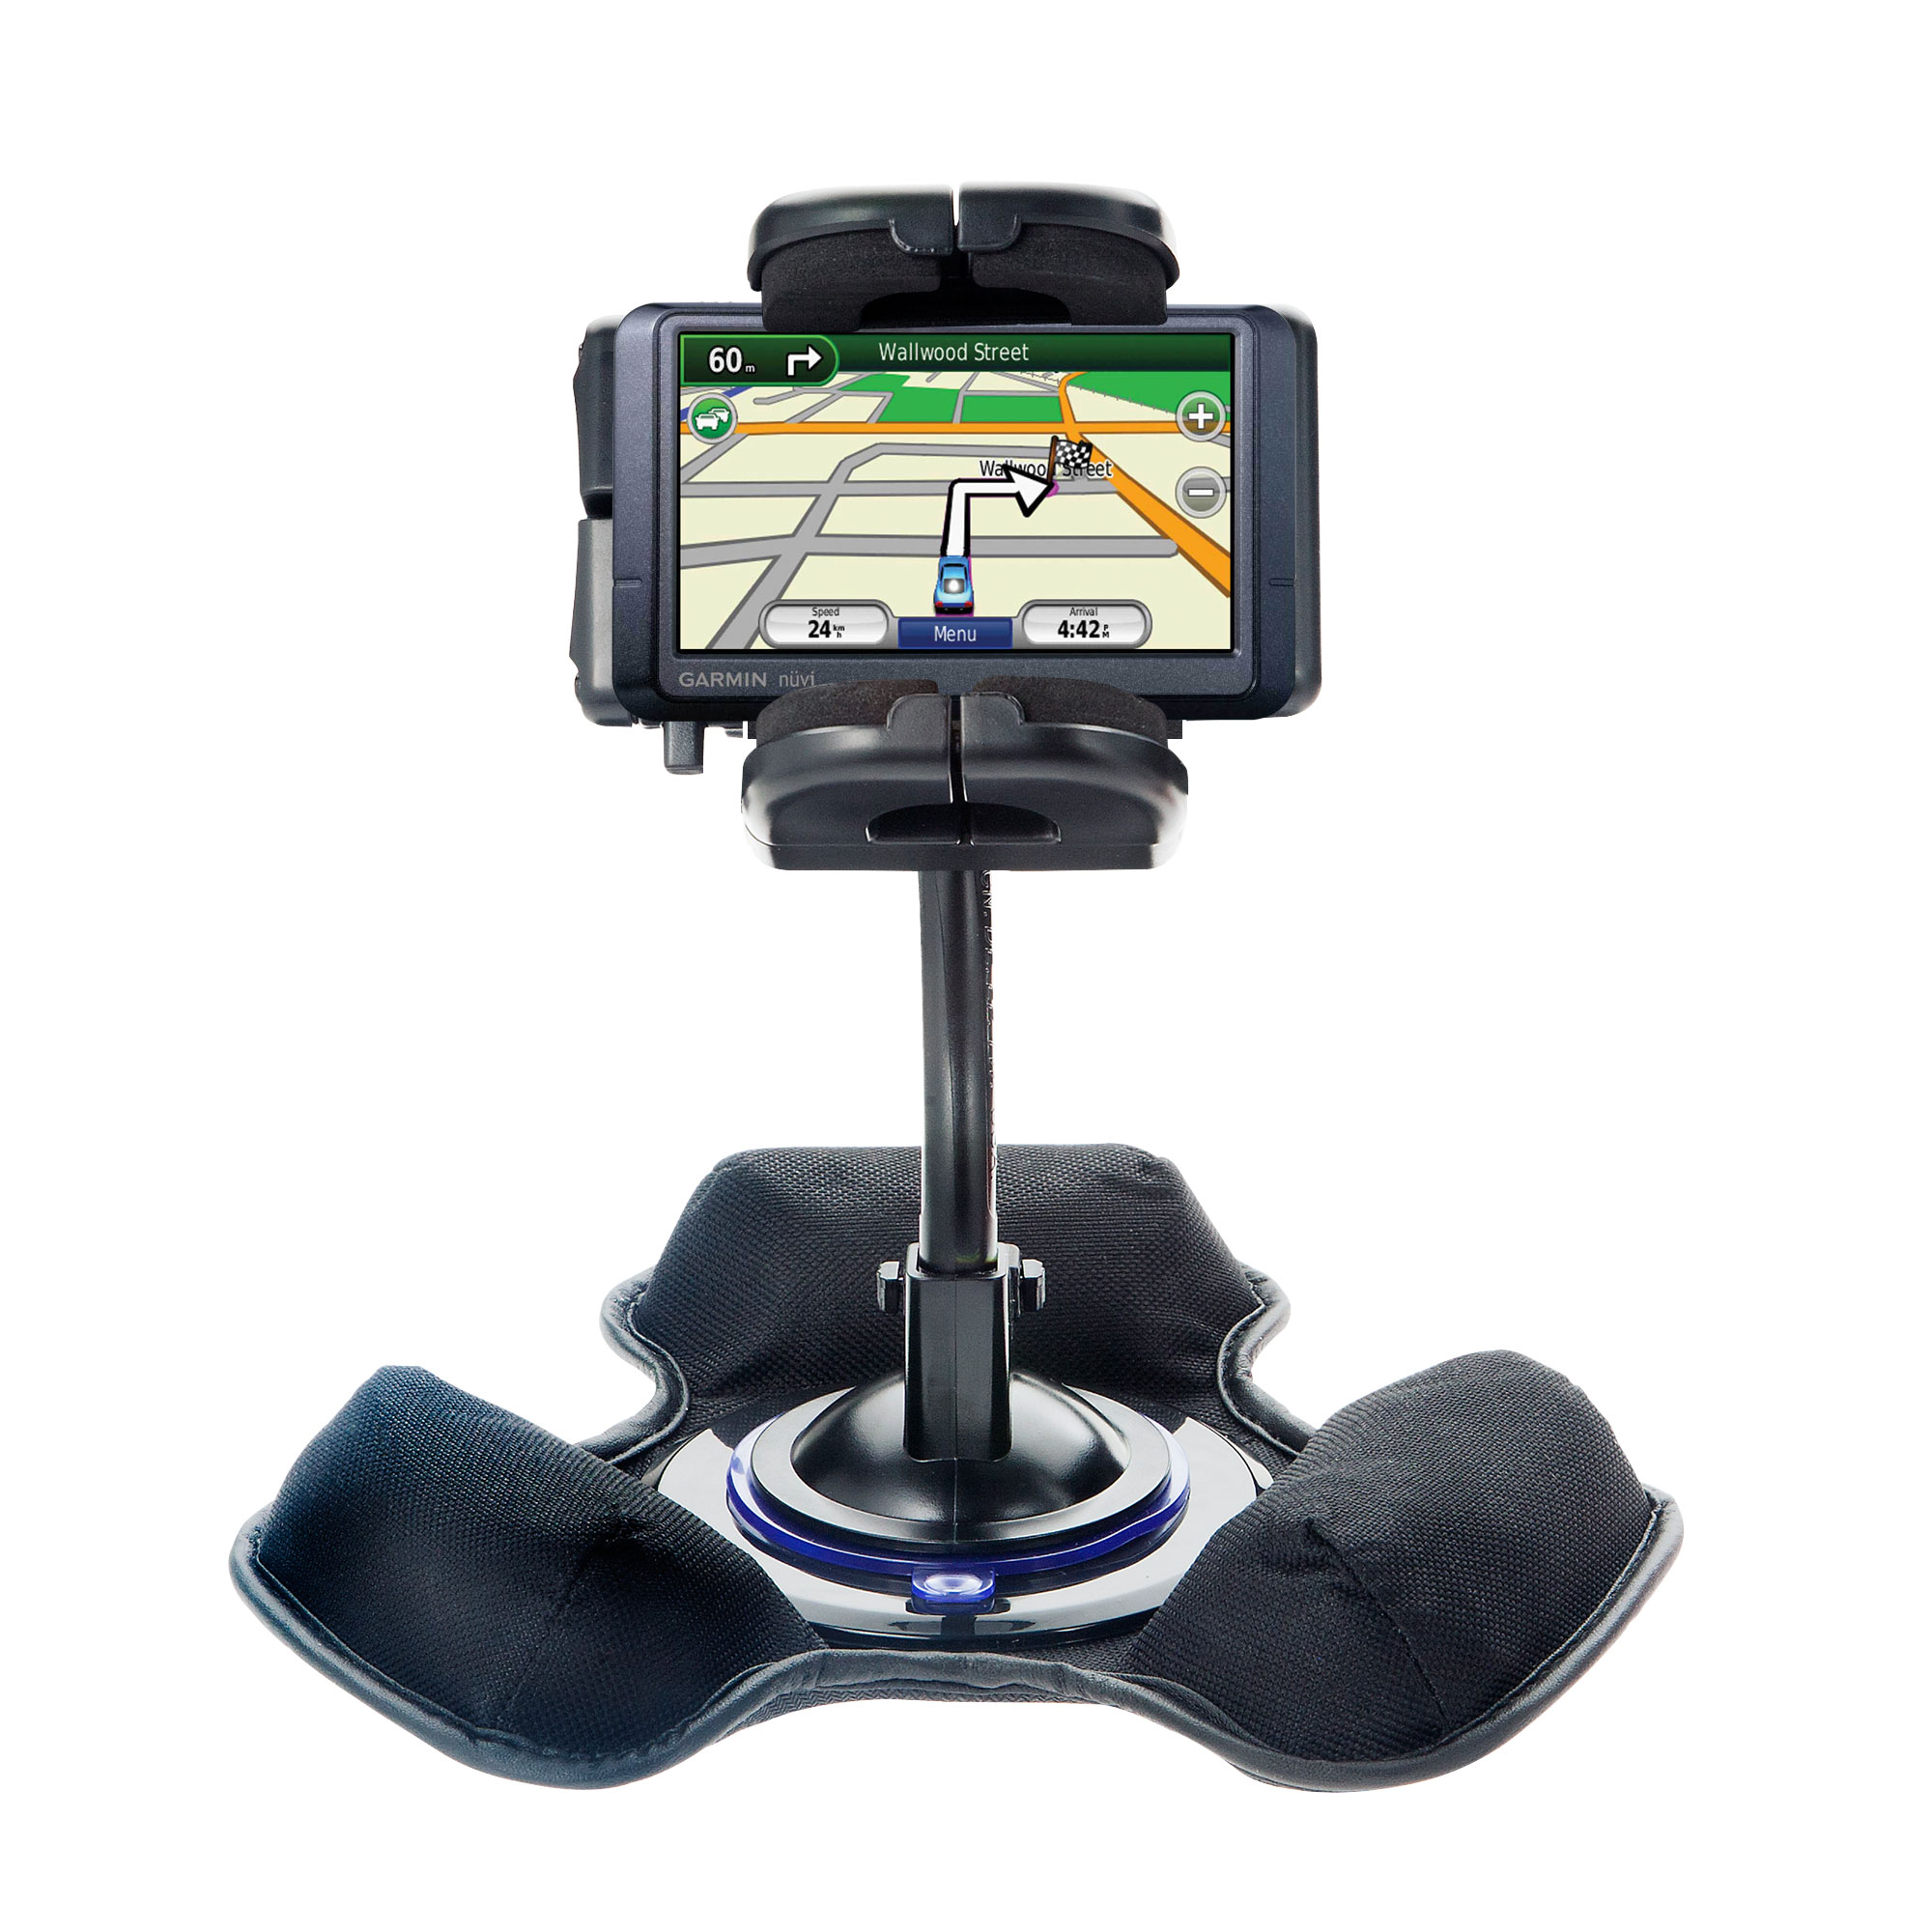 Car / Truck Vehicle Holder Mounting System for Garmin Nuvi 255 Includes Unique Flexible Windshield Suction and Universal Dashboard Mount Options